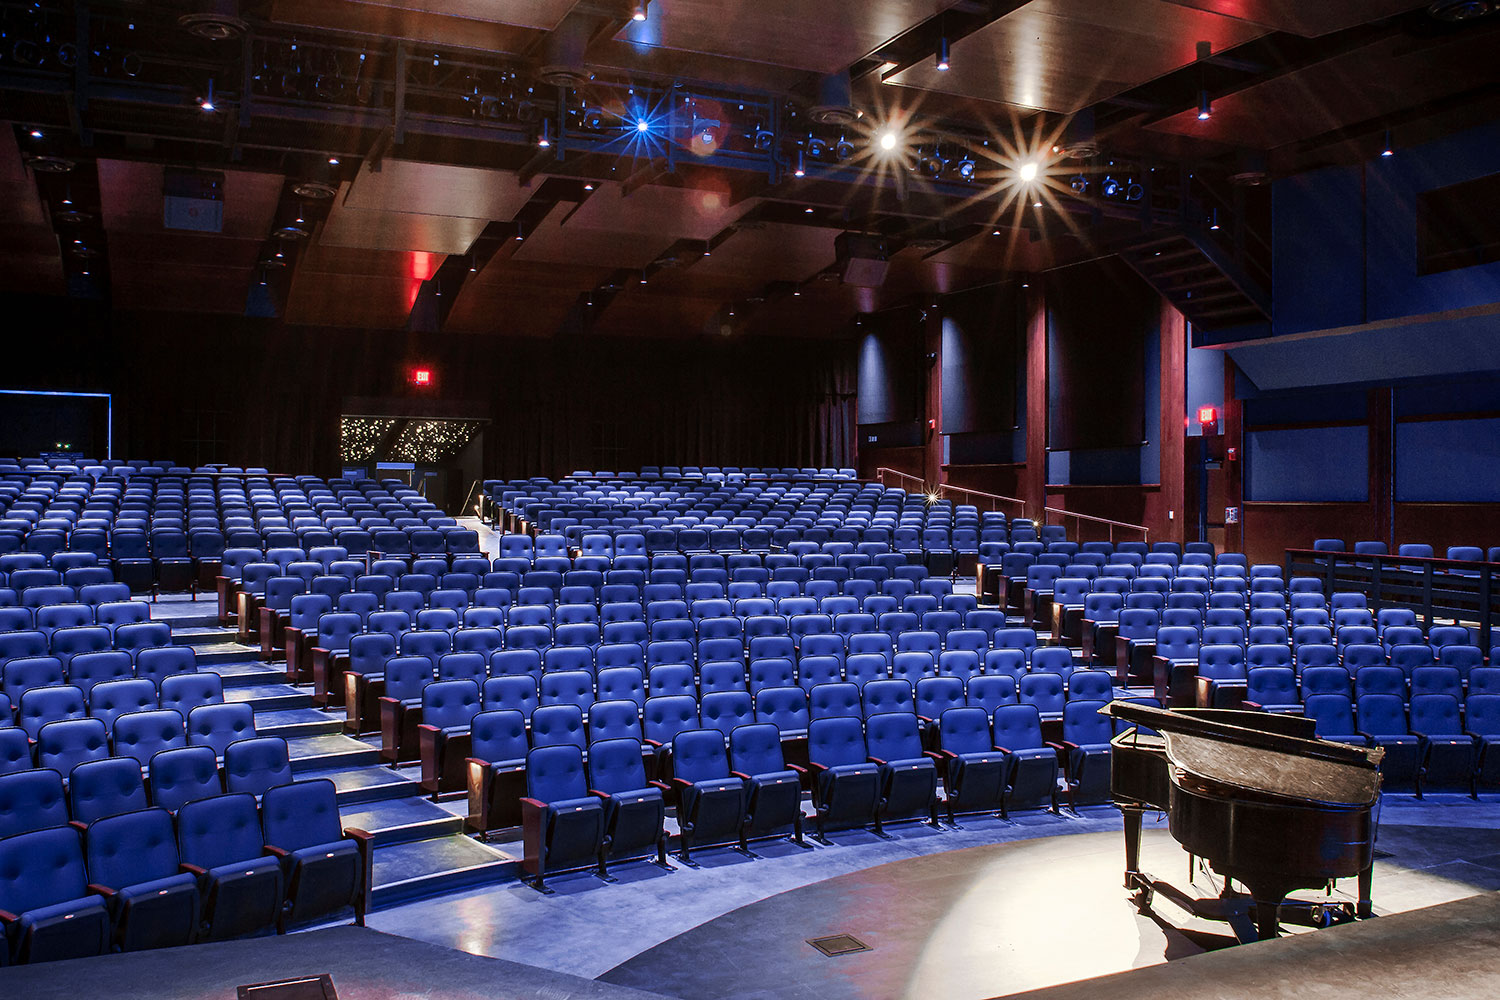 Goshen High School new auditorium in Goshen, NY. WSDG was retained to acoustically measure the space and collaborate on the redesign with LAN Associates to optimize the space for these needs while still retaining the aesthetic goals of the redesign. Stage View.